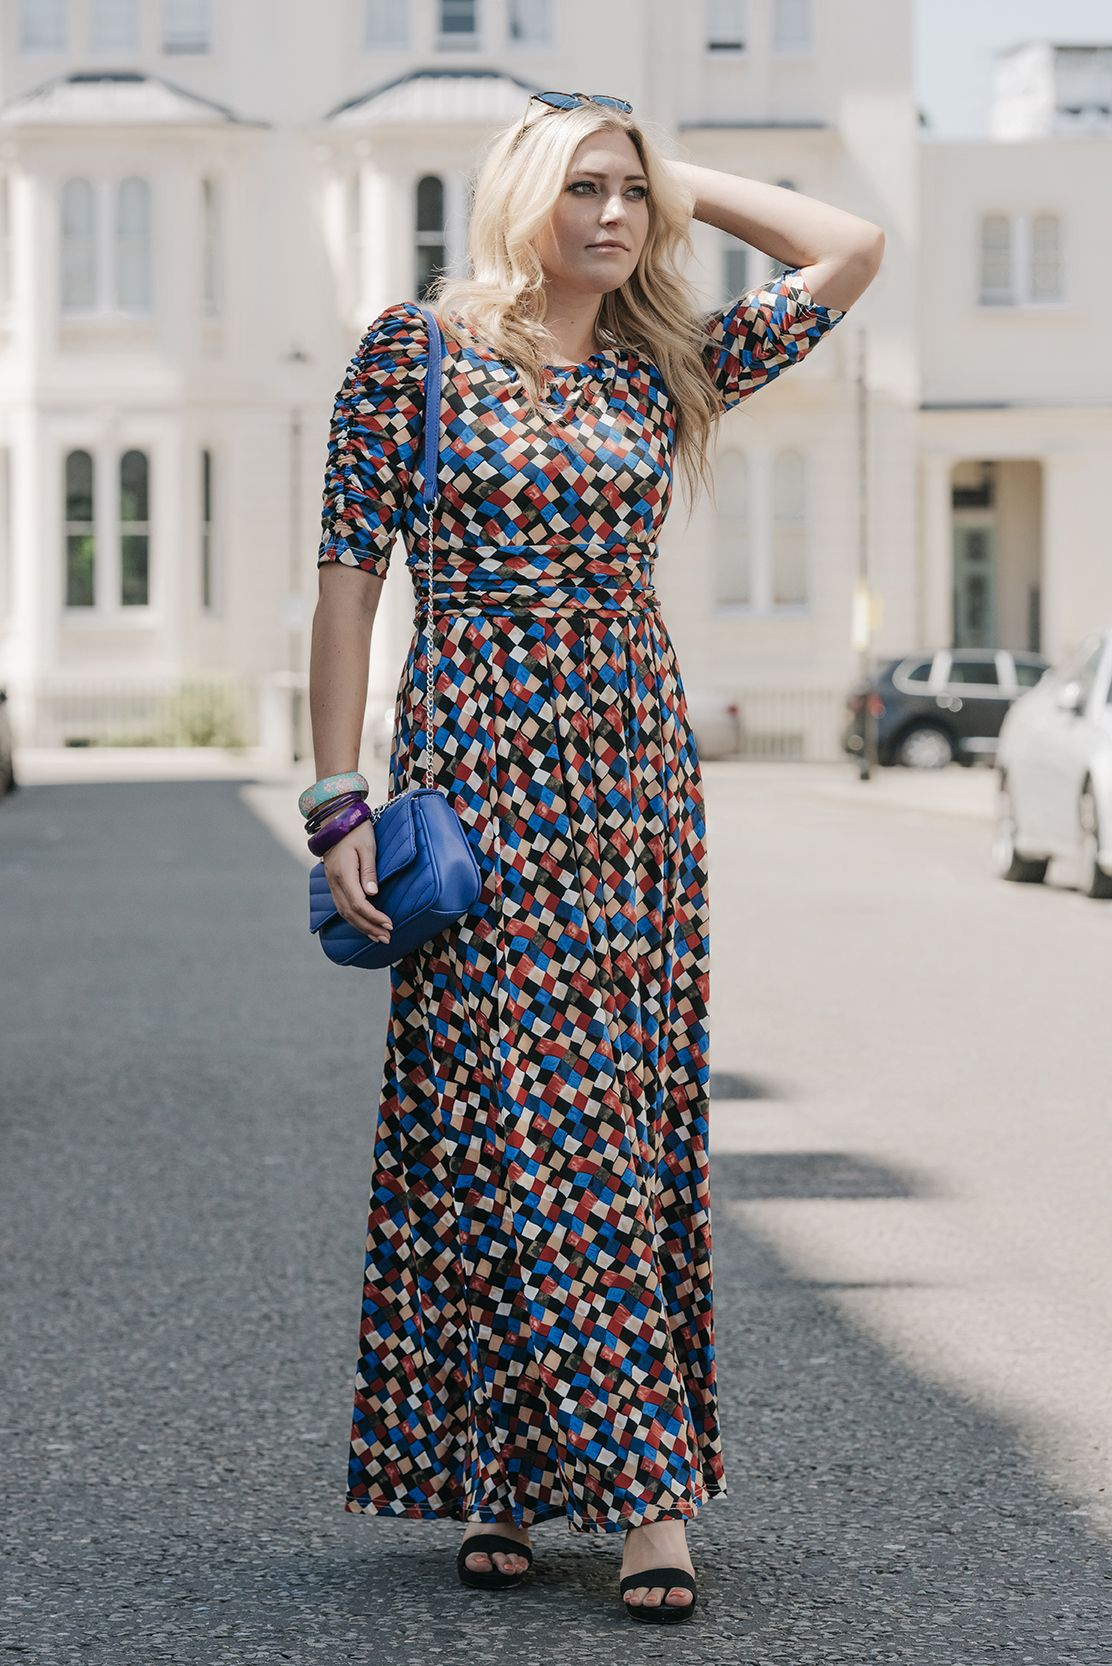 Jolie Moi Half Sleeve Maxi Dress Black Multi Create A Flowing Silhouette In This Statement Maxi Dres Maxi Dress With Sleeves Clothes For Women Maxi Dress [ 1666 x 1112 Pixel ]